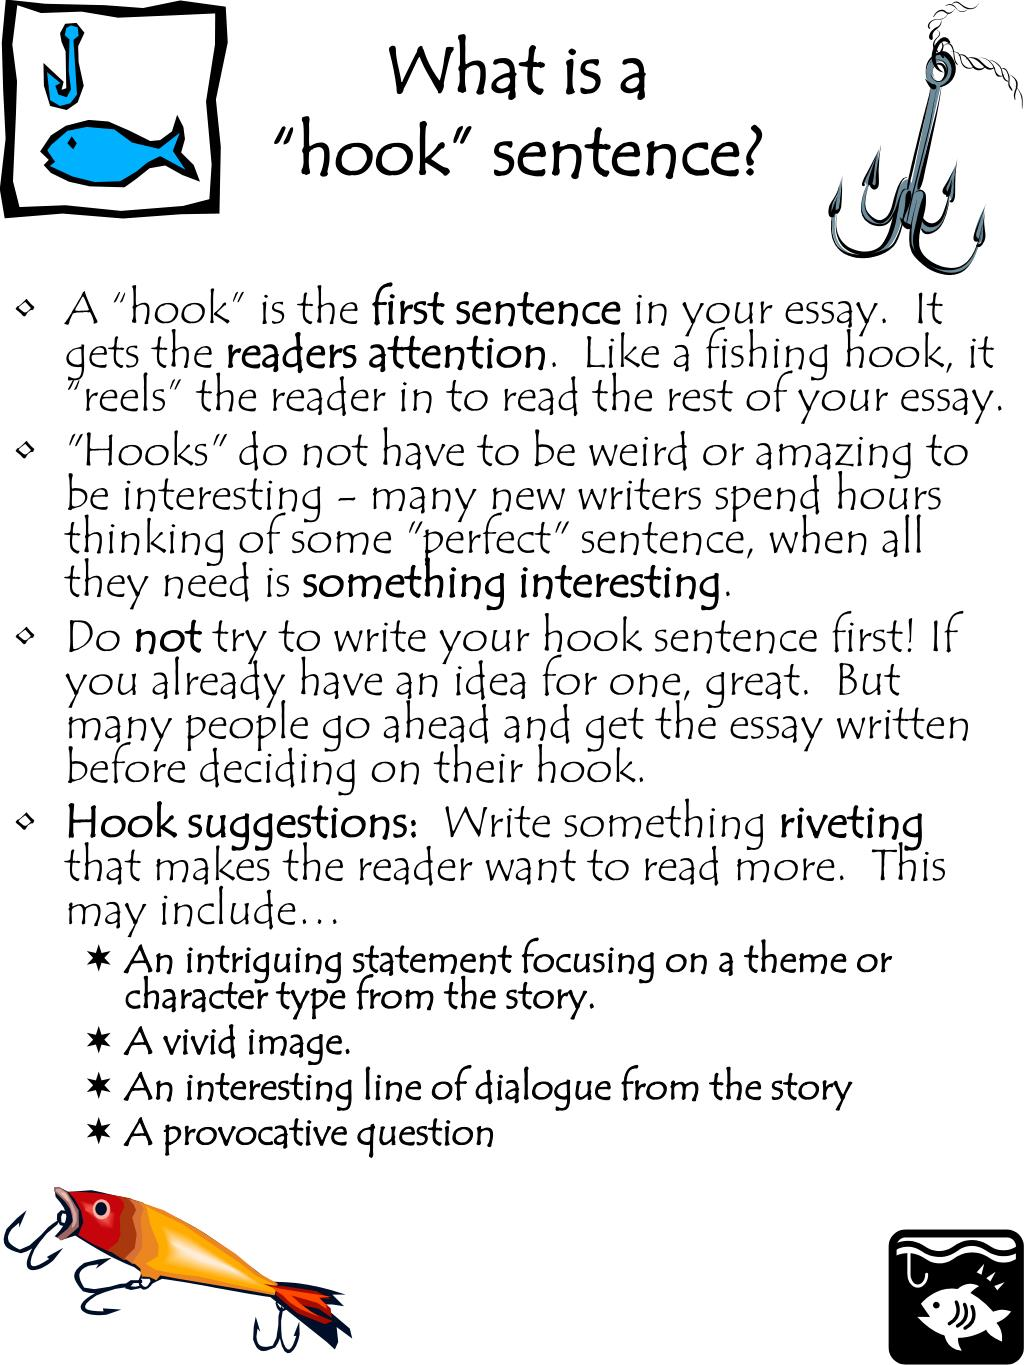 attention getting sentences for essays Most essays don't begin by stating the thesis in the first sentence the reader needs to be warmed up first you wouldn't ask someone out on a date without introducing yourself first, right right likewise, you wouldn't jump right to the thesis without an attention-getter and background information in the introduction.